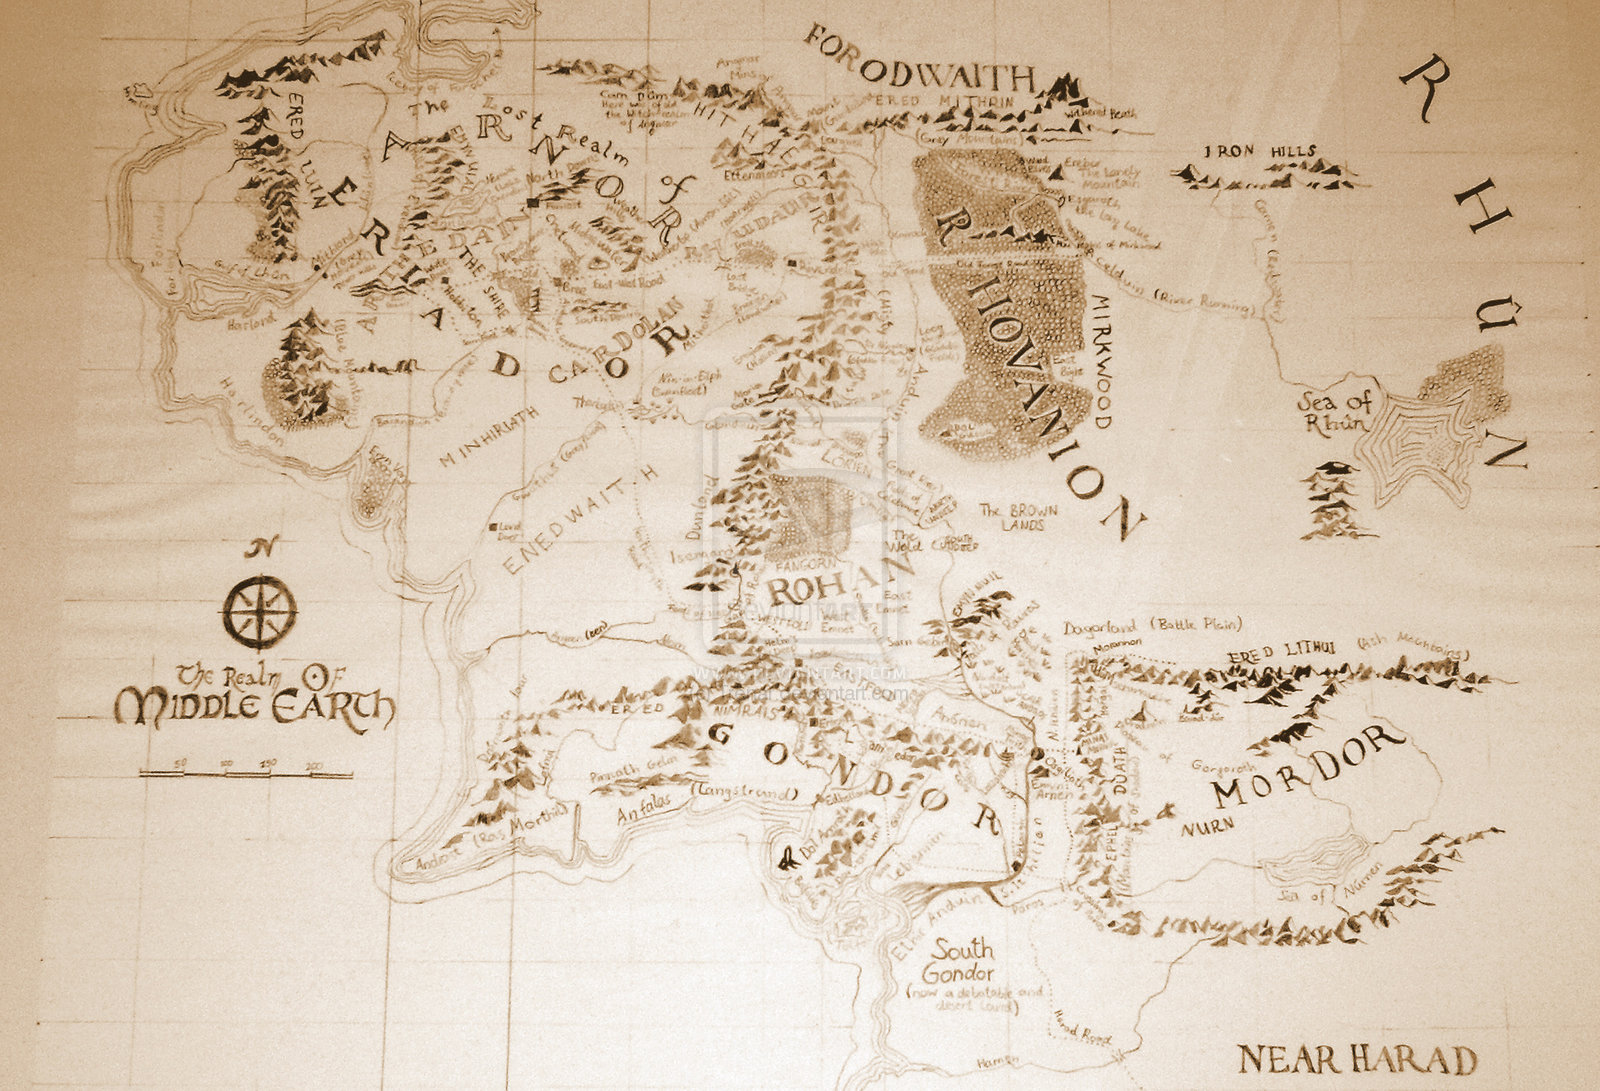 Free download map of middle earth by trenar on deviantart a map of